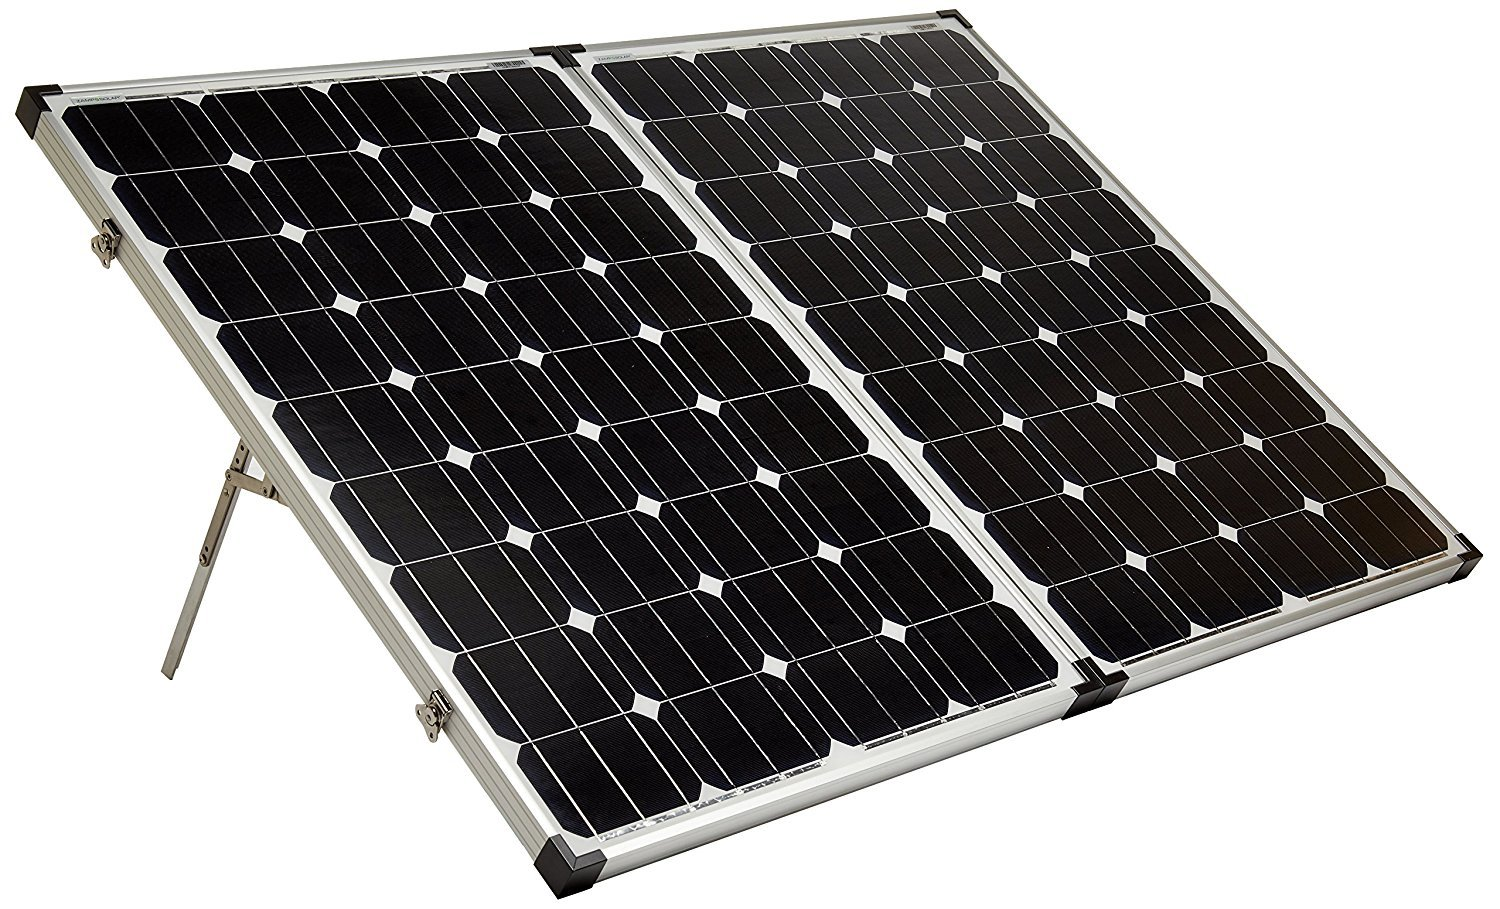 Solar Panels For Camping Trailers Ten Best Portable